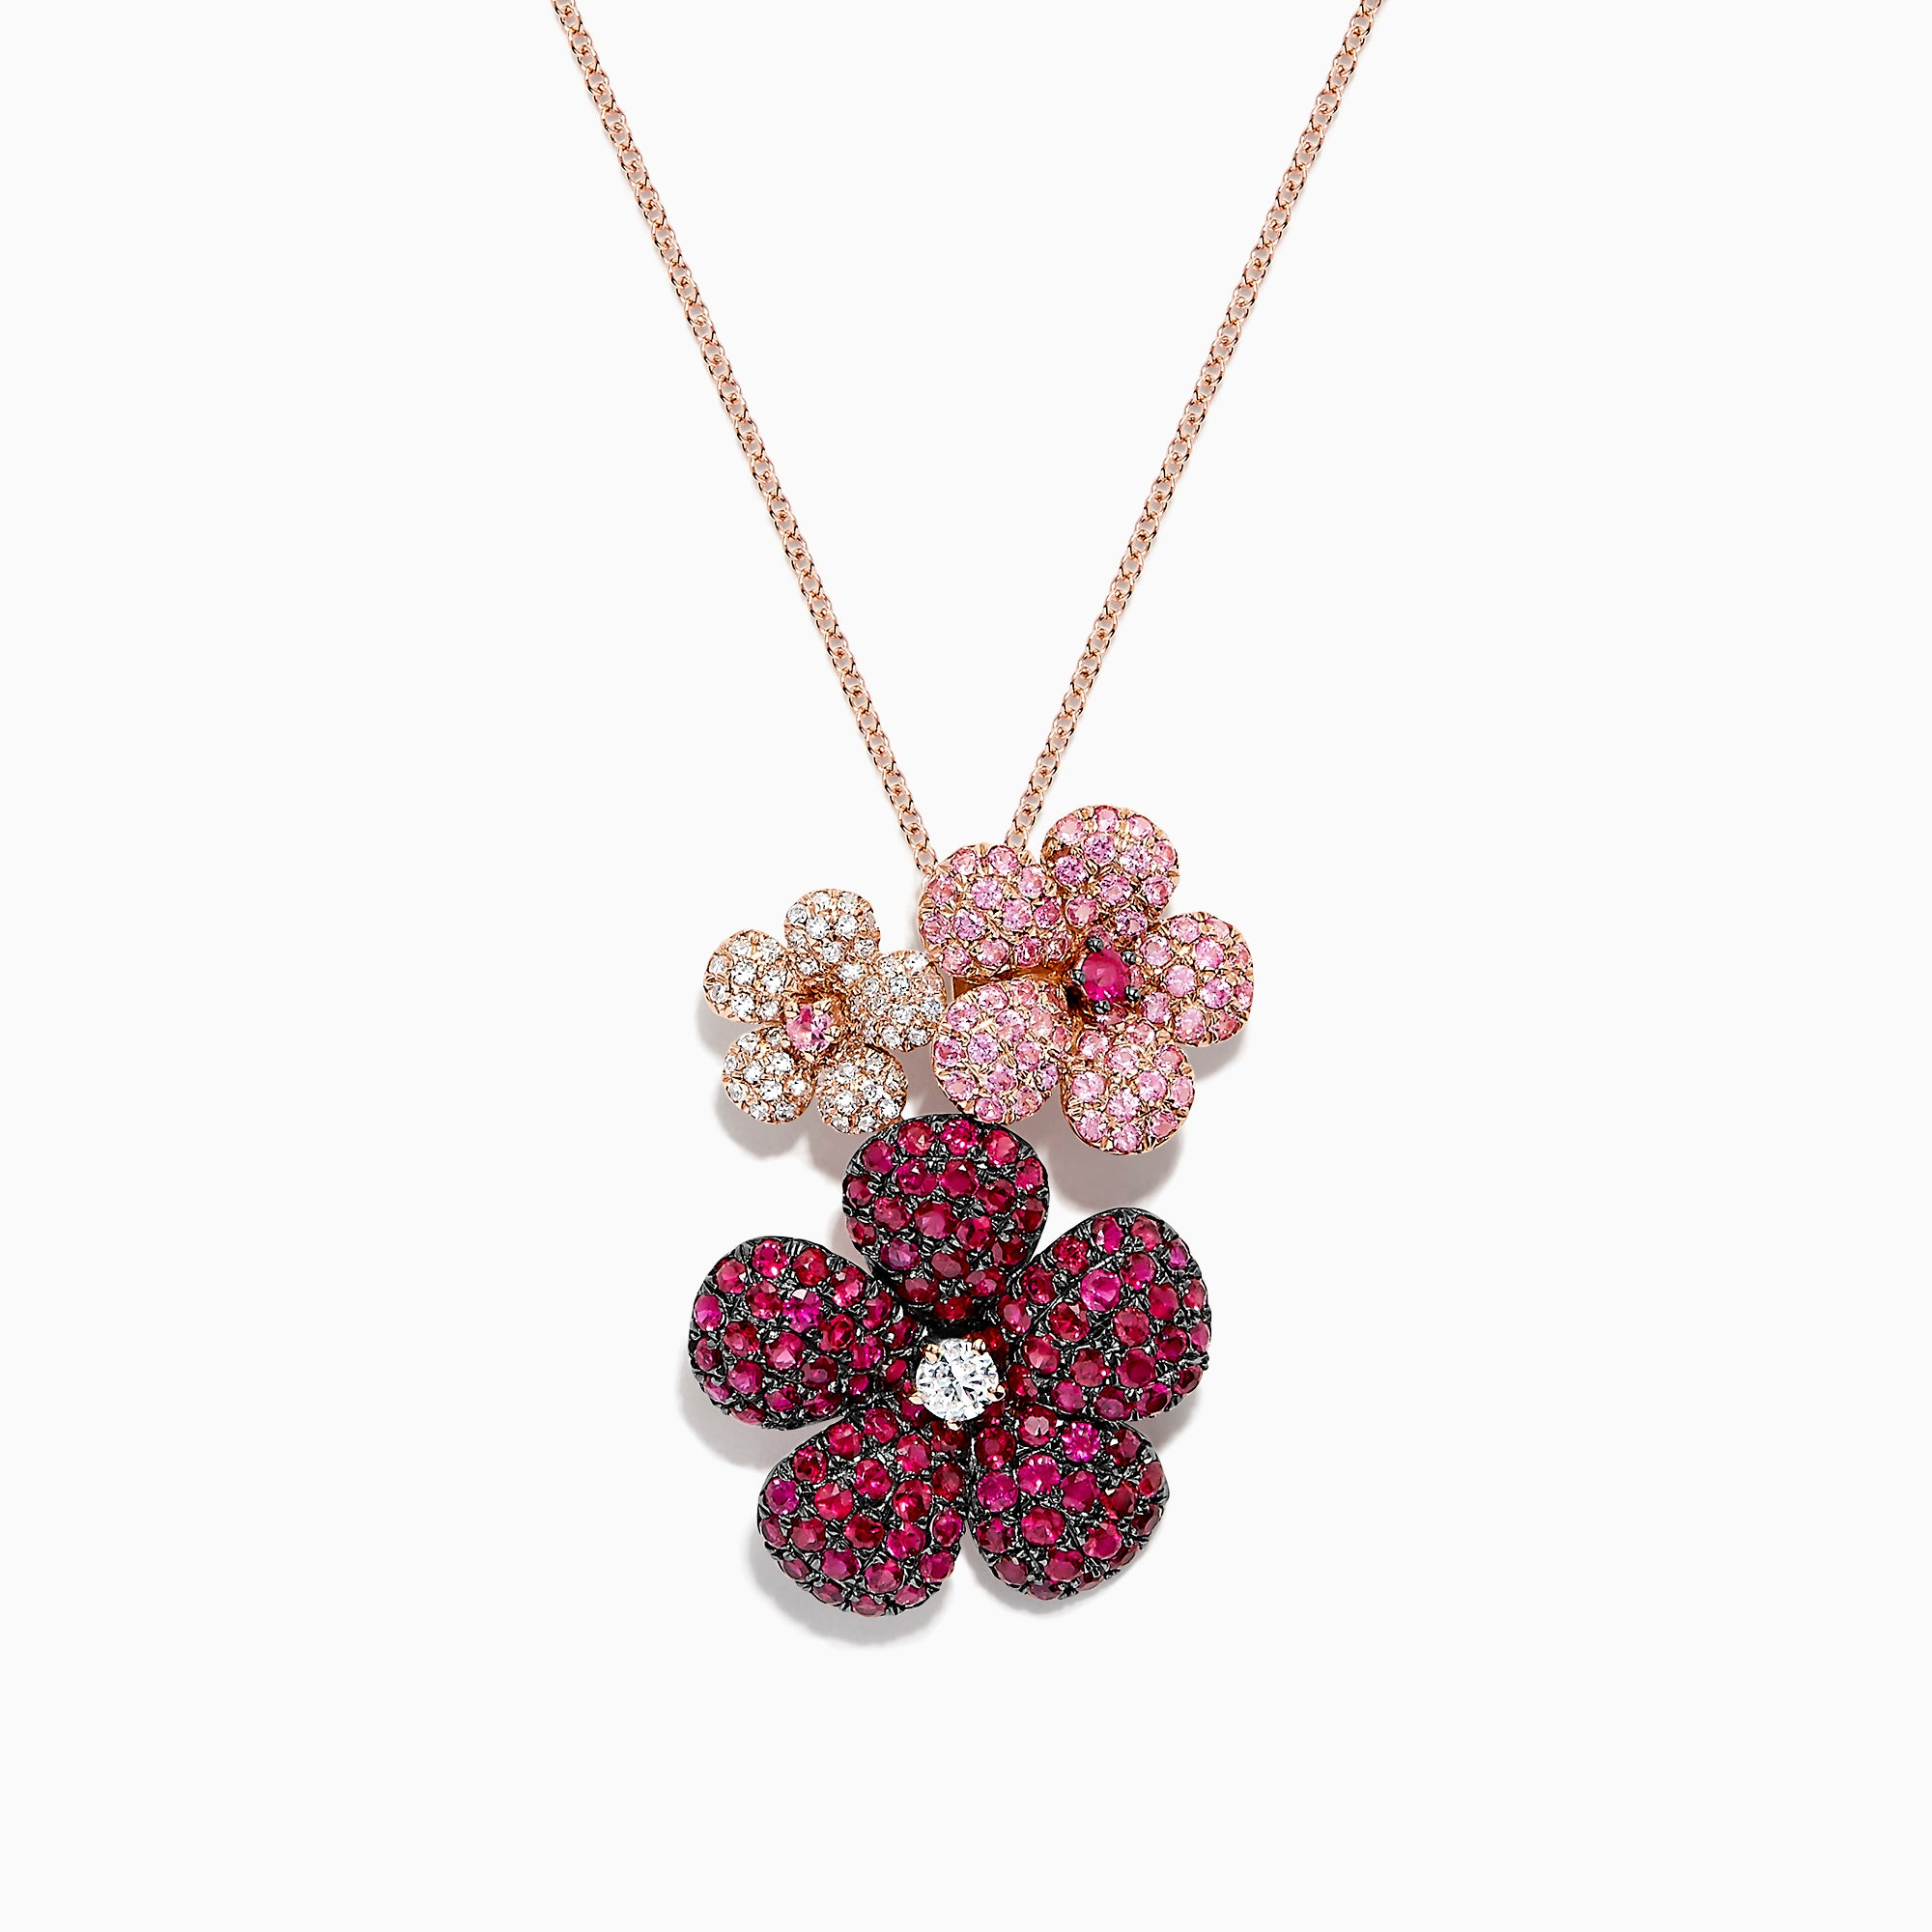 Effy Nature 14K Gold Ruby, Sapphire and Diamond Flowers Pendant, 3.02 TCW